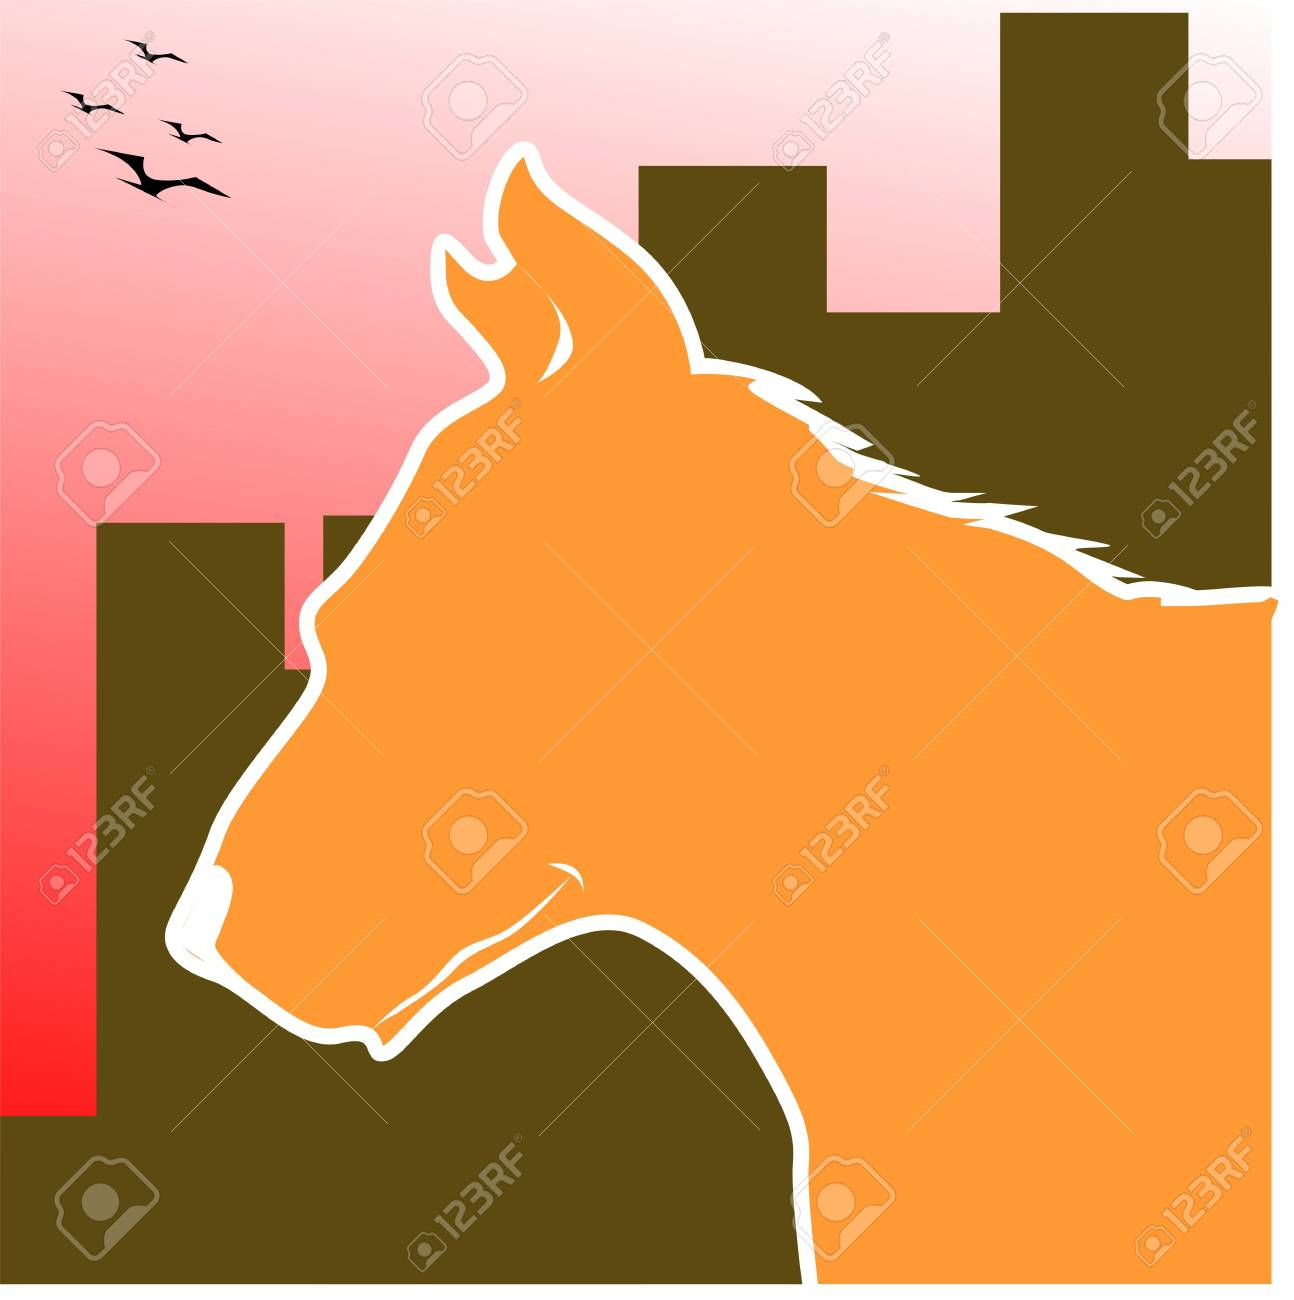 Illustration of silhouette of a horse Stock Photo - 3423410